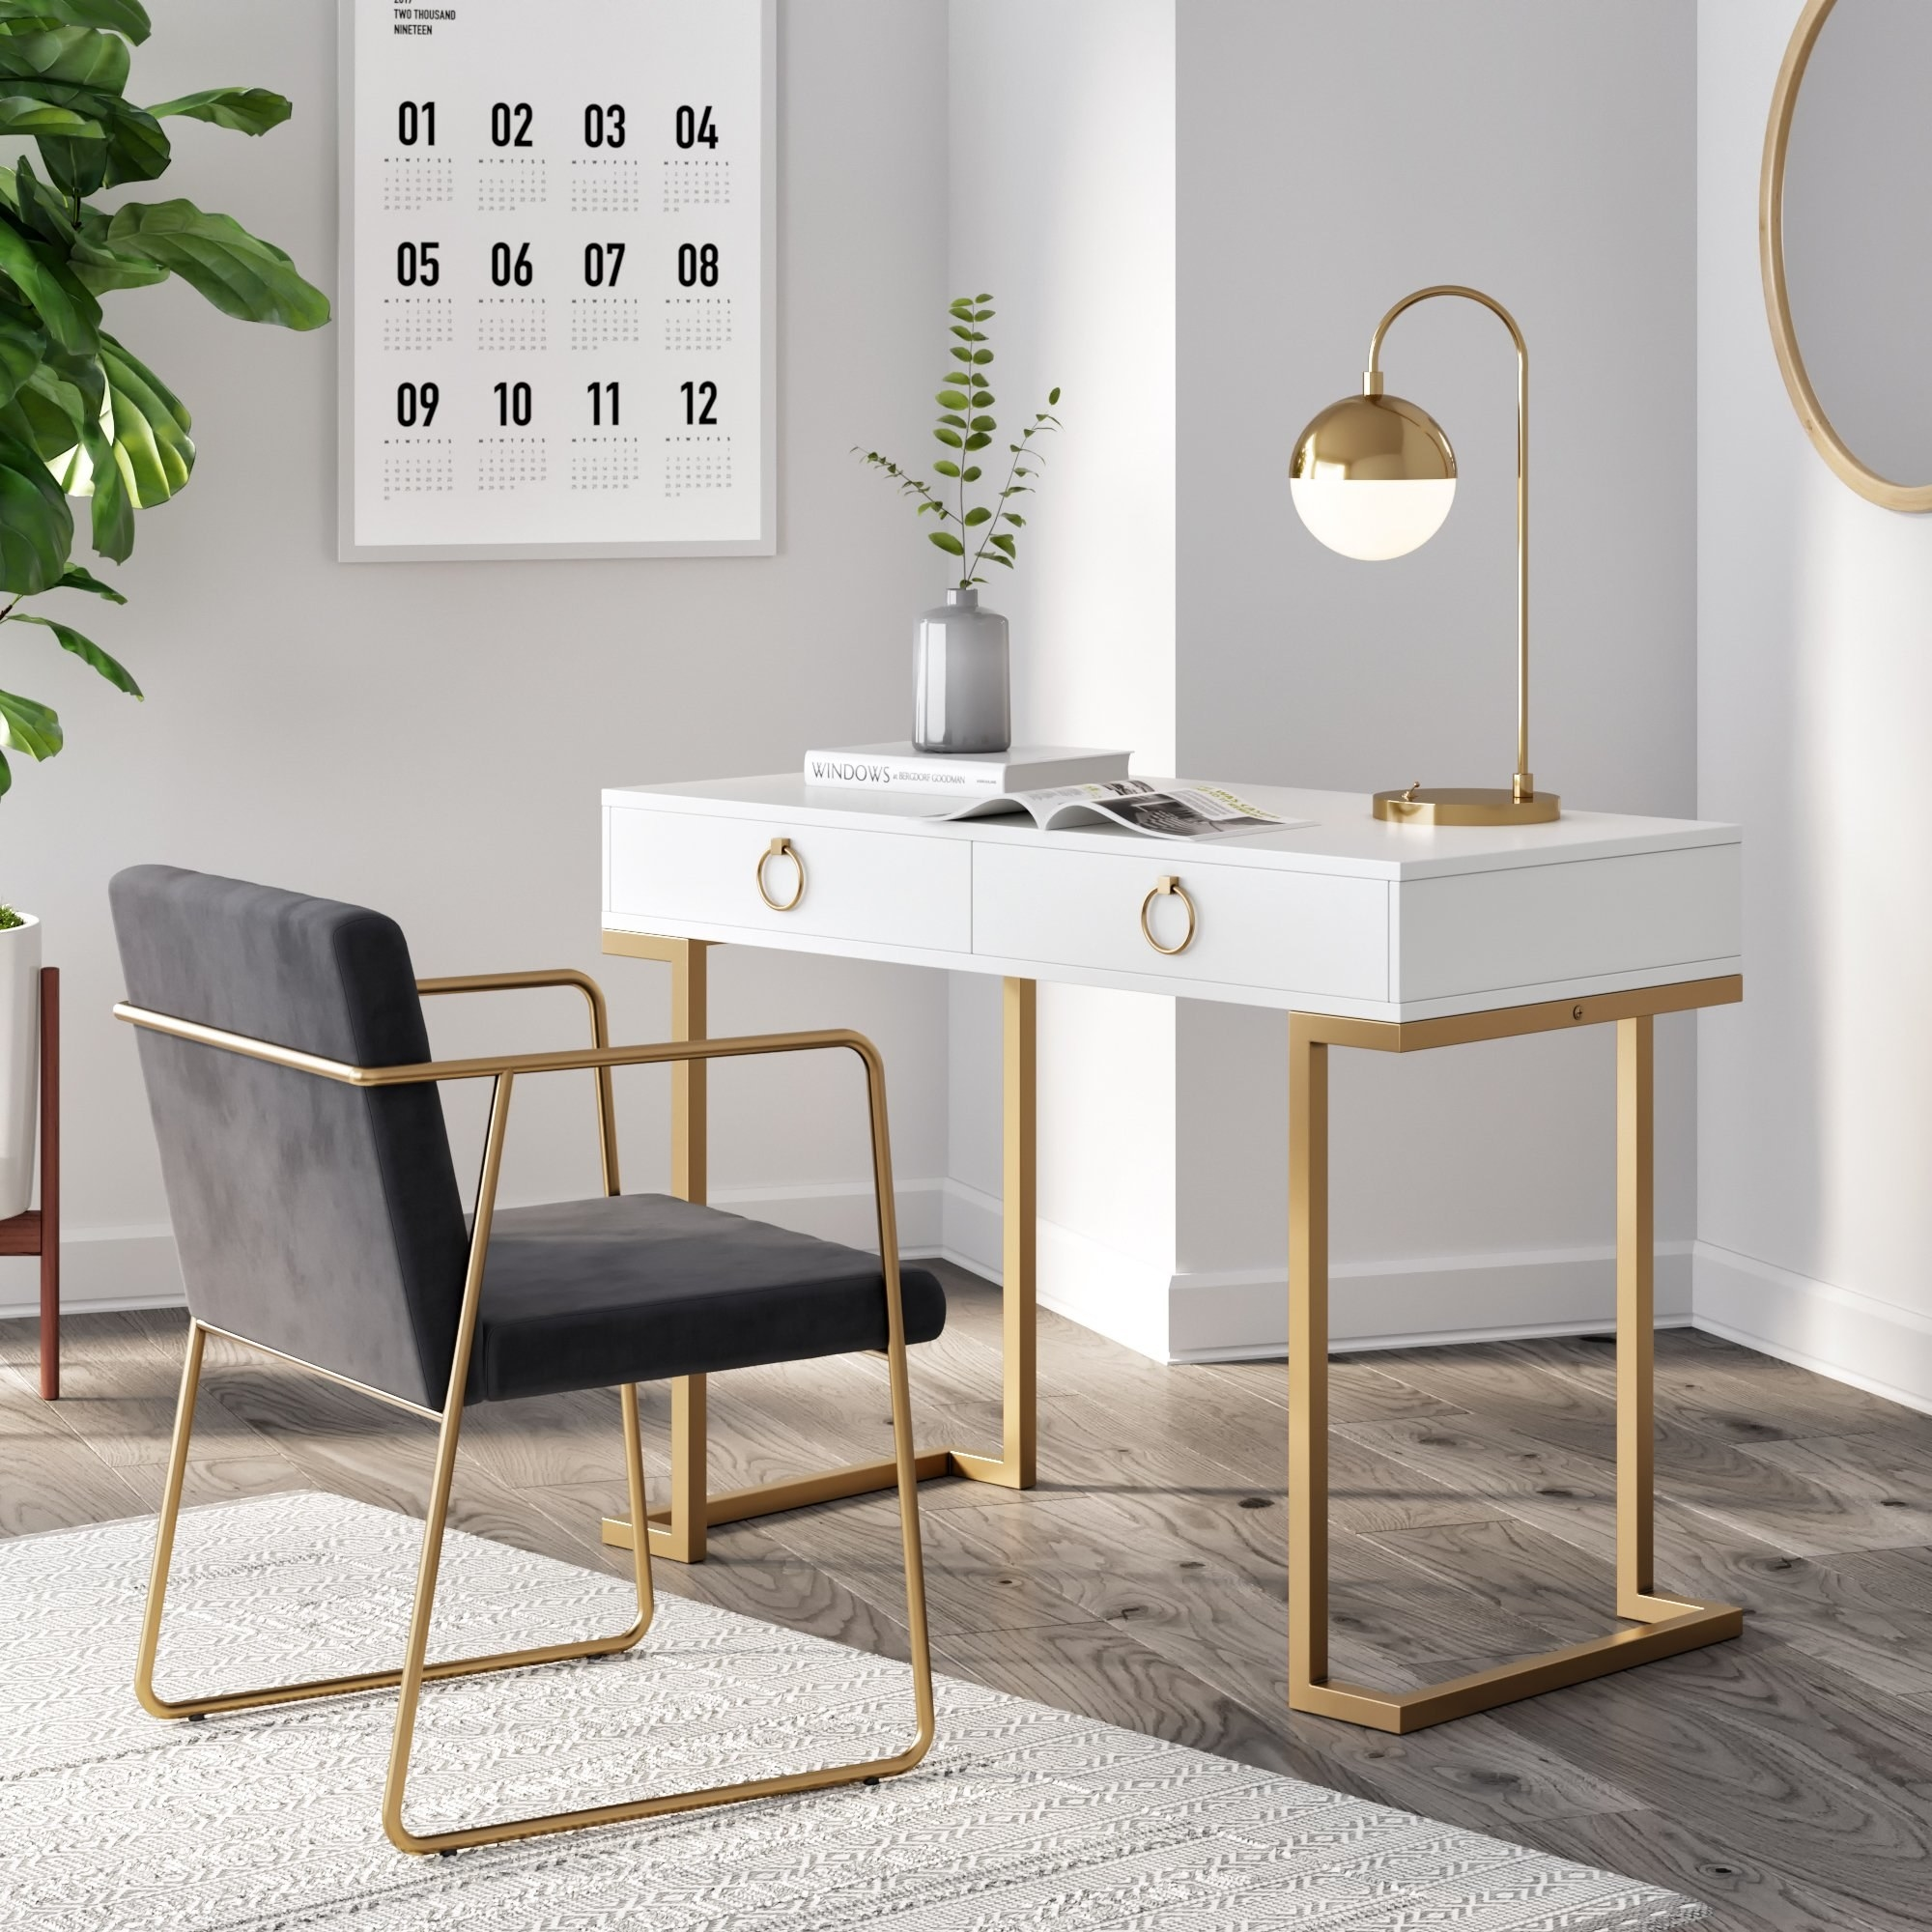 A white desk with gold detailing